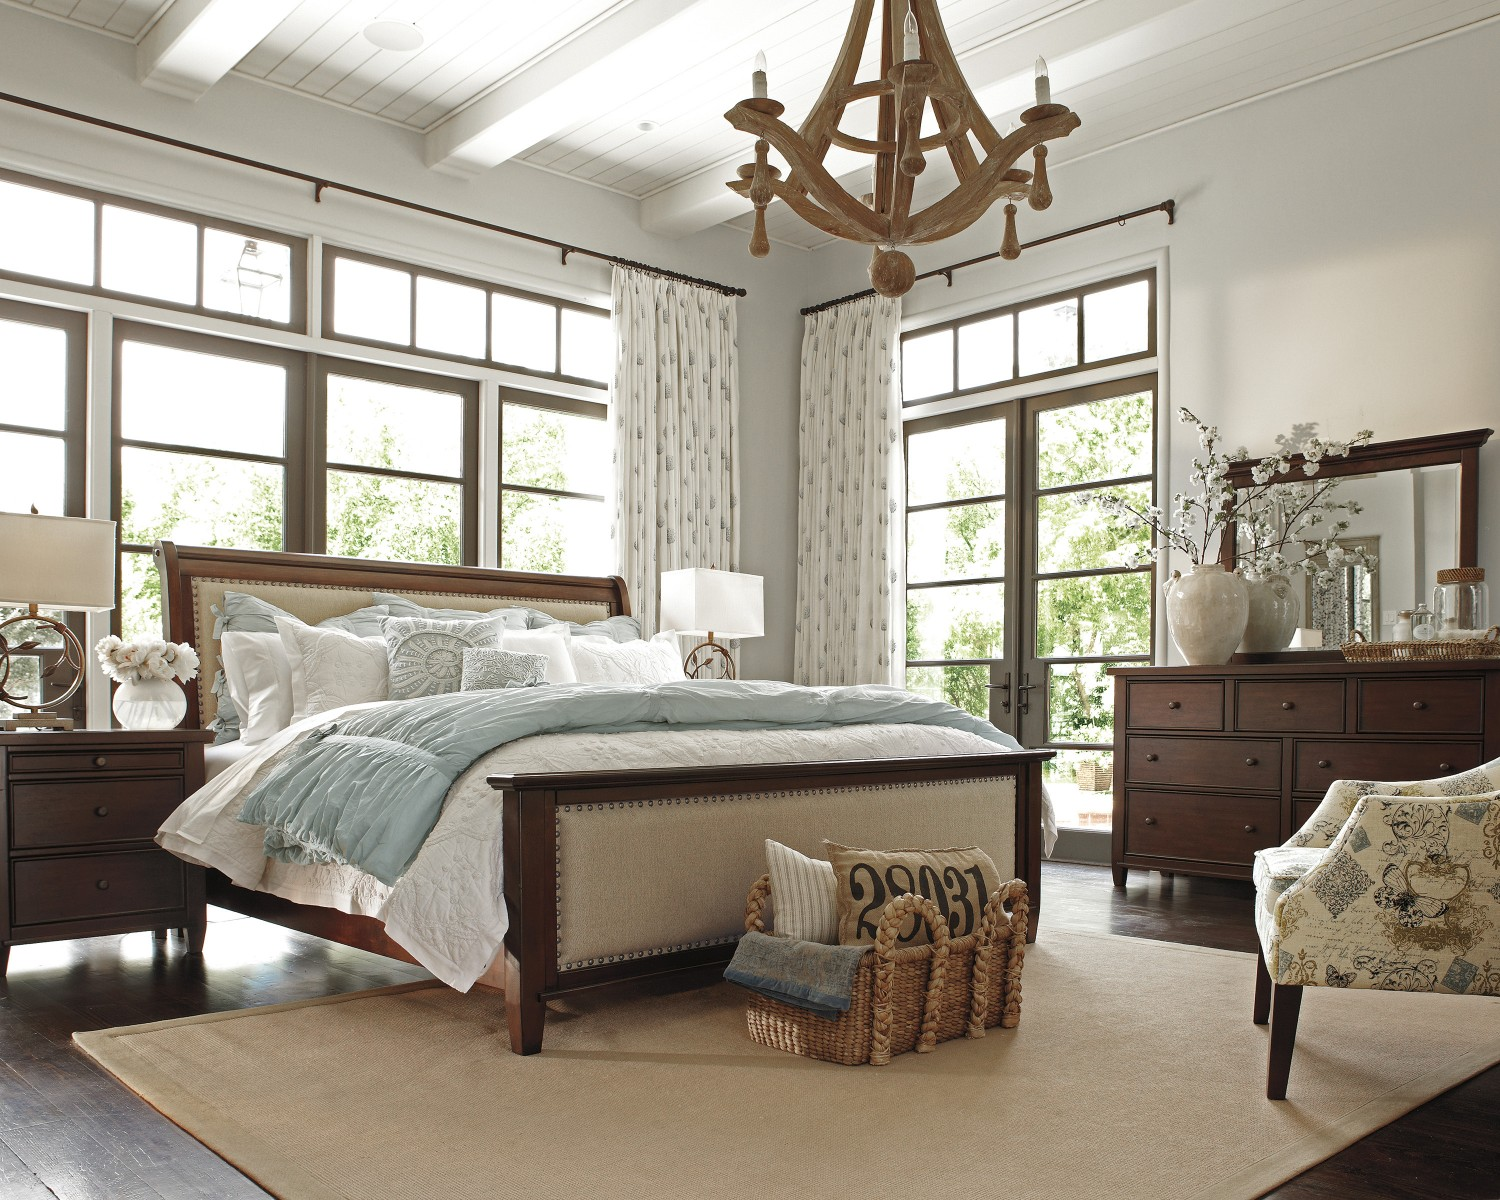 Interior Design Tips For Couples With Eclectic Style .